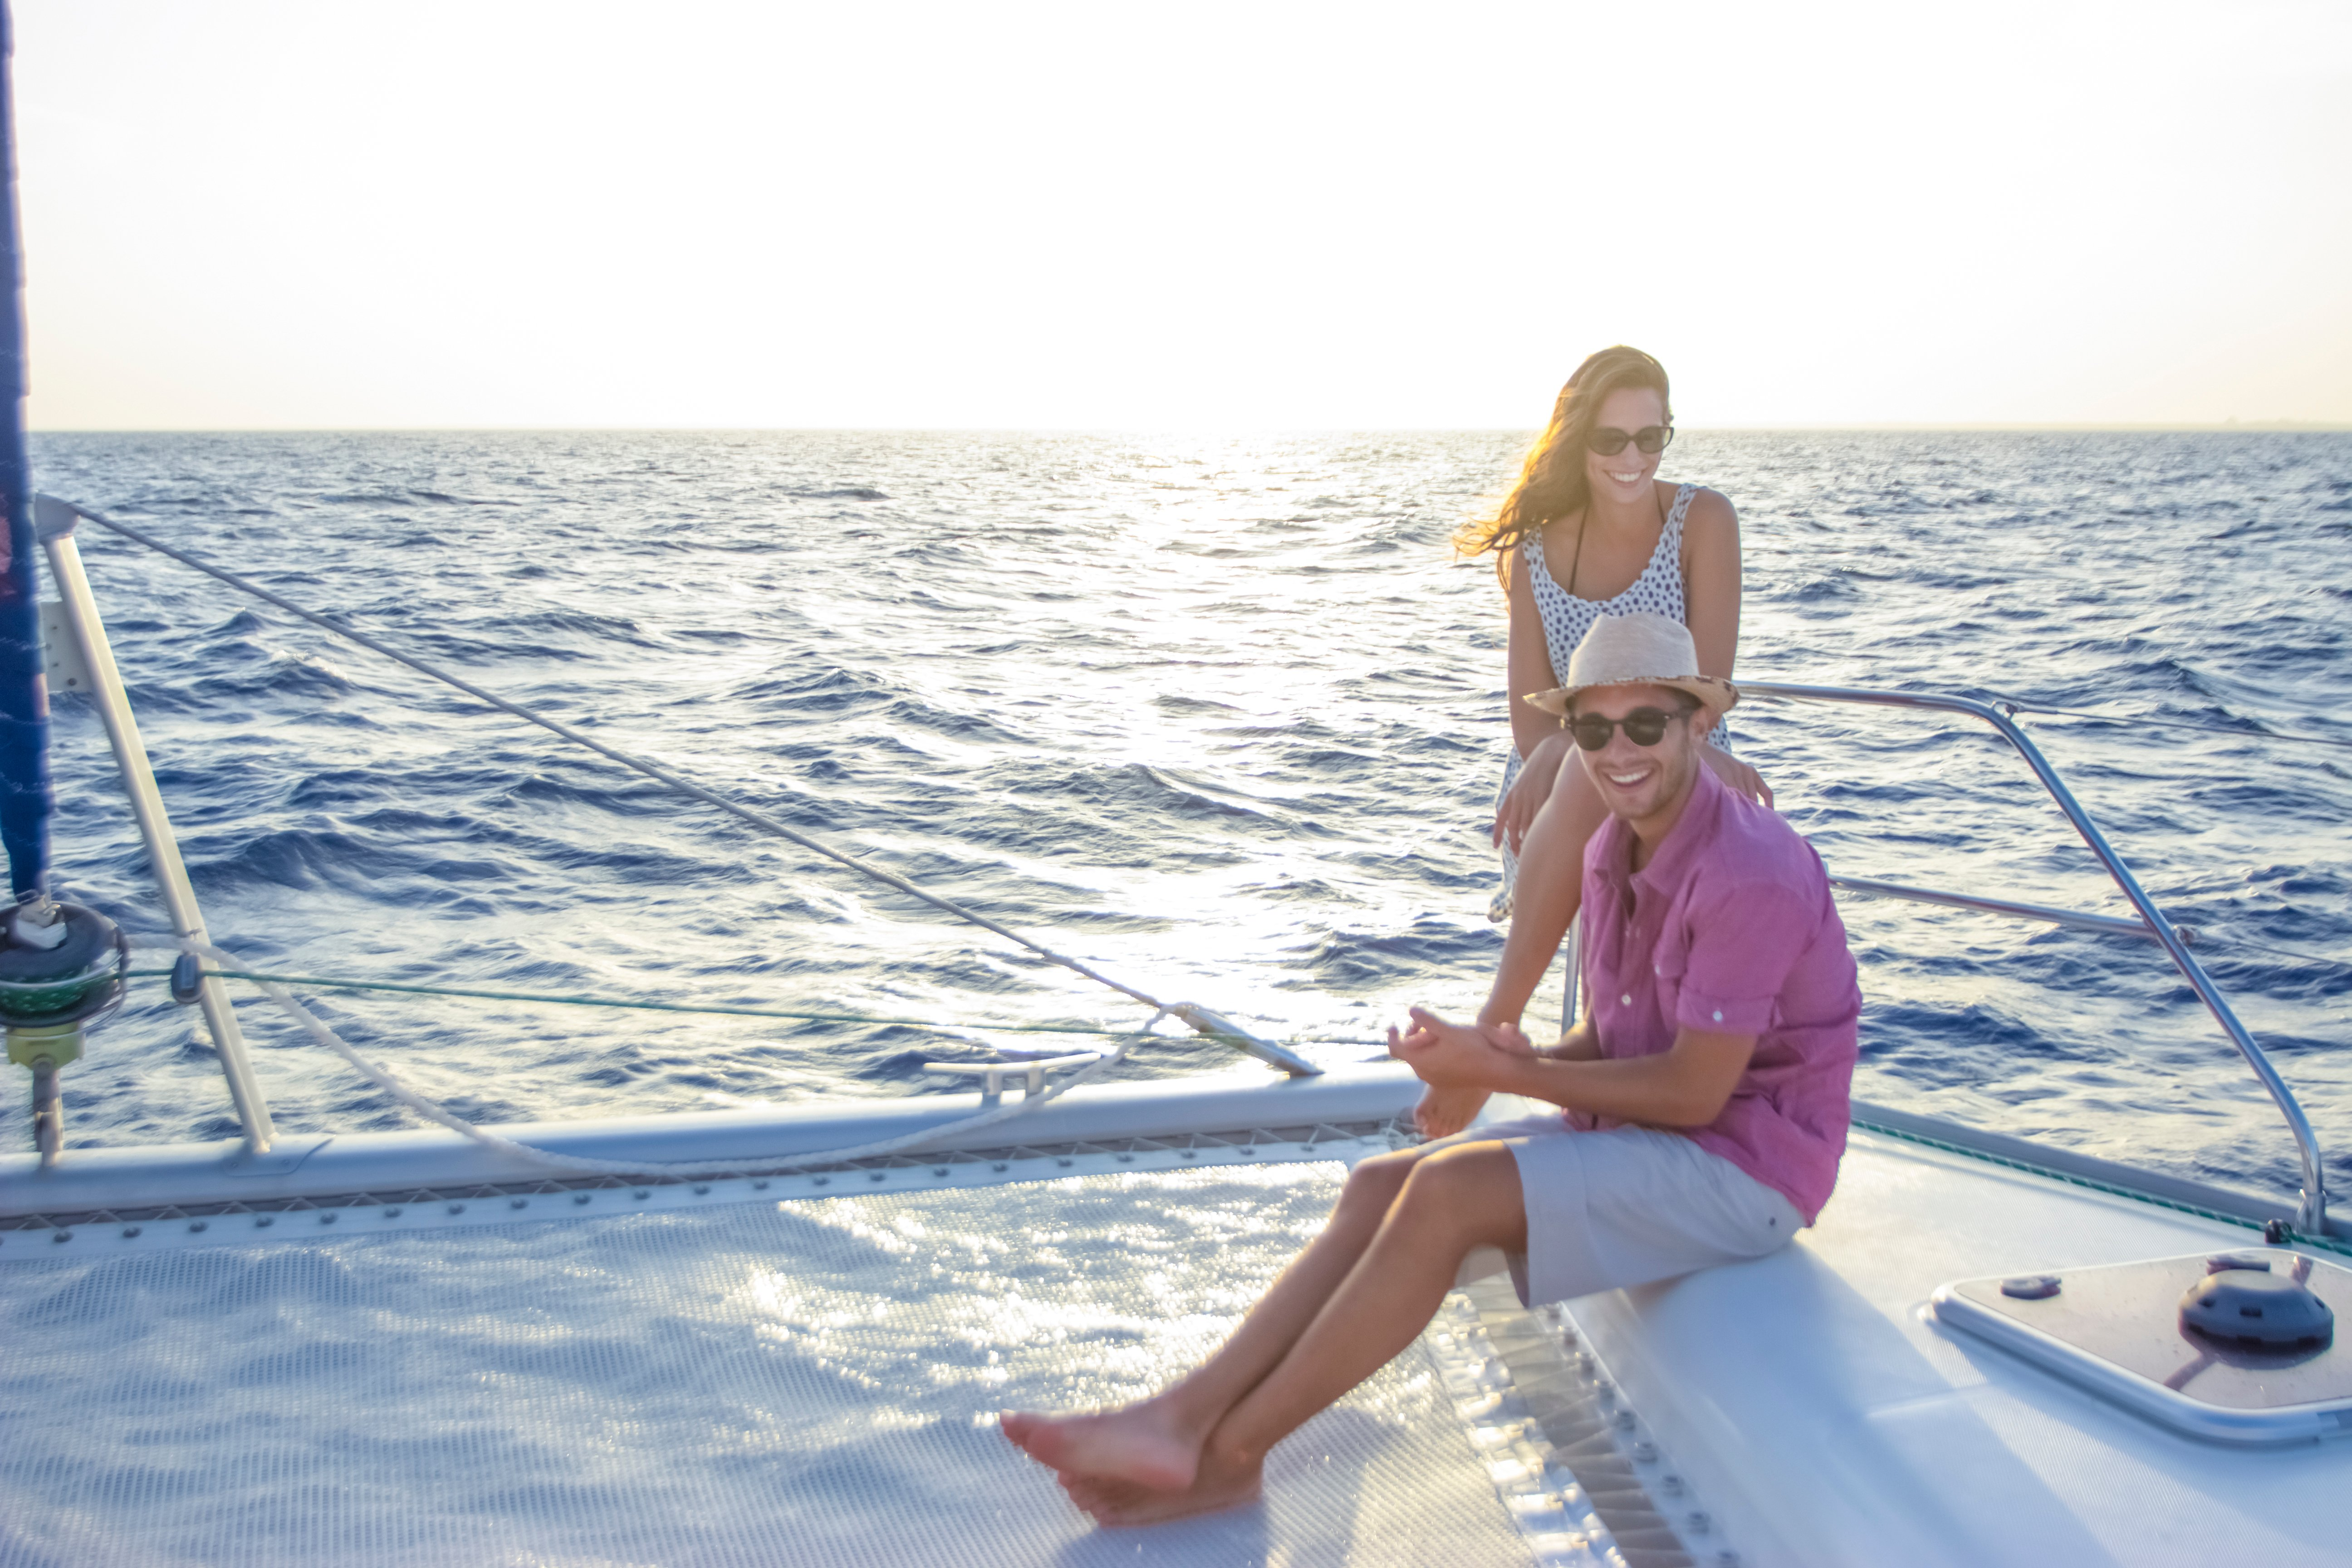 Couple vacationing in cancun on a boat